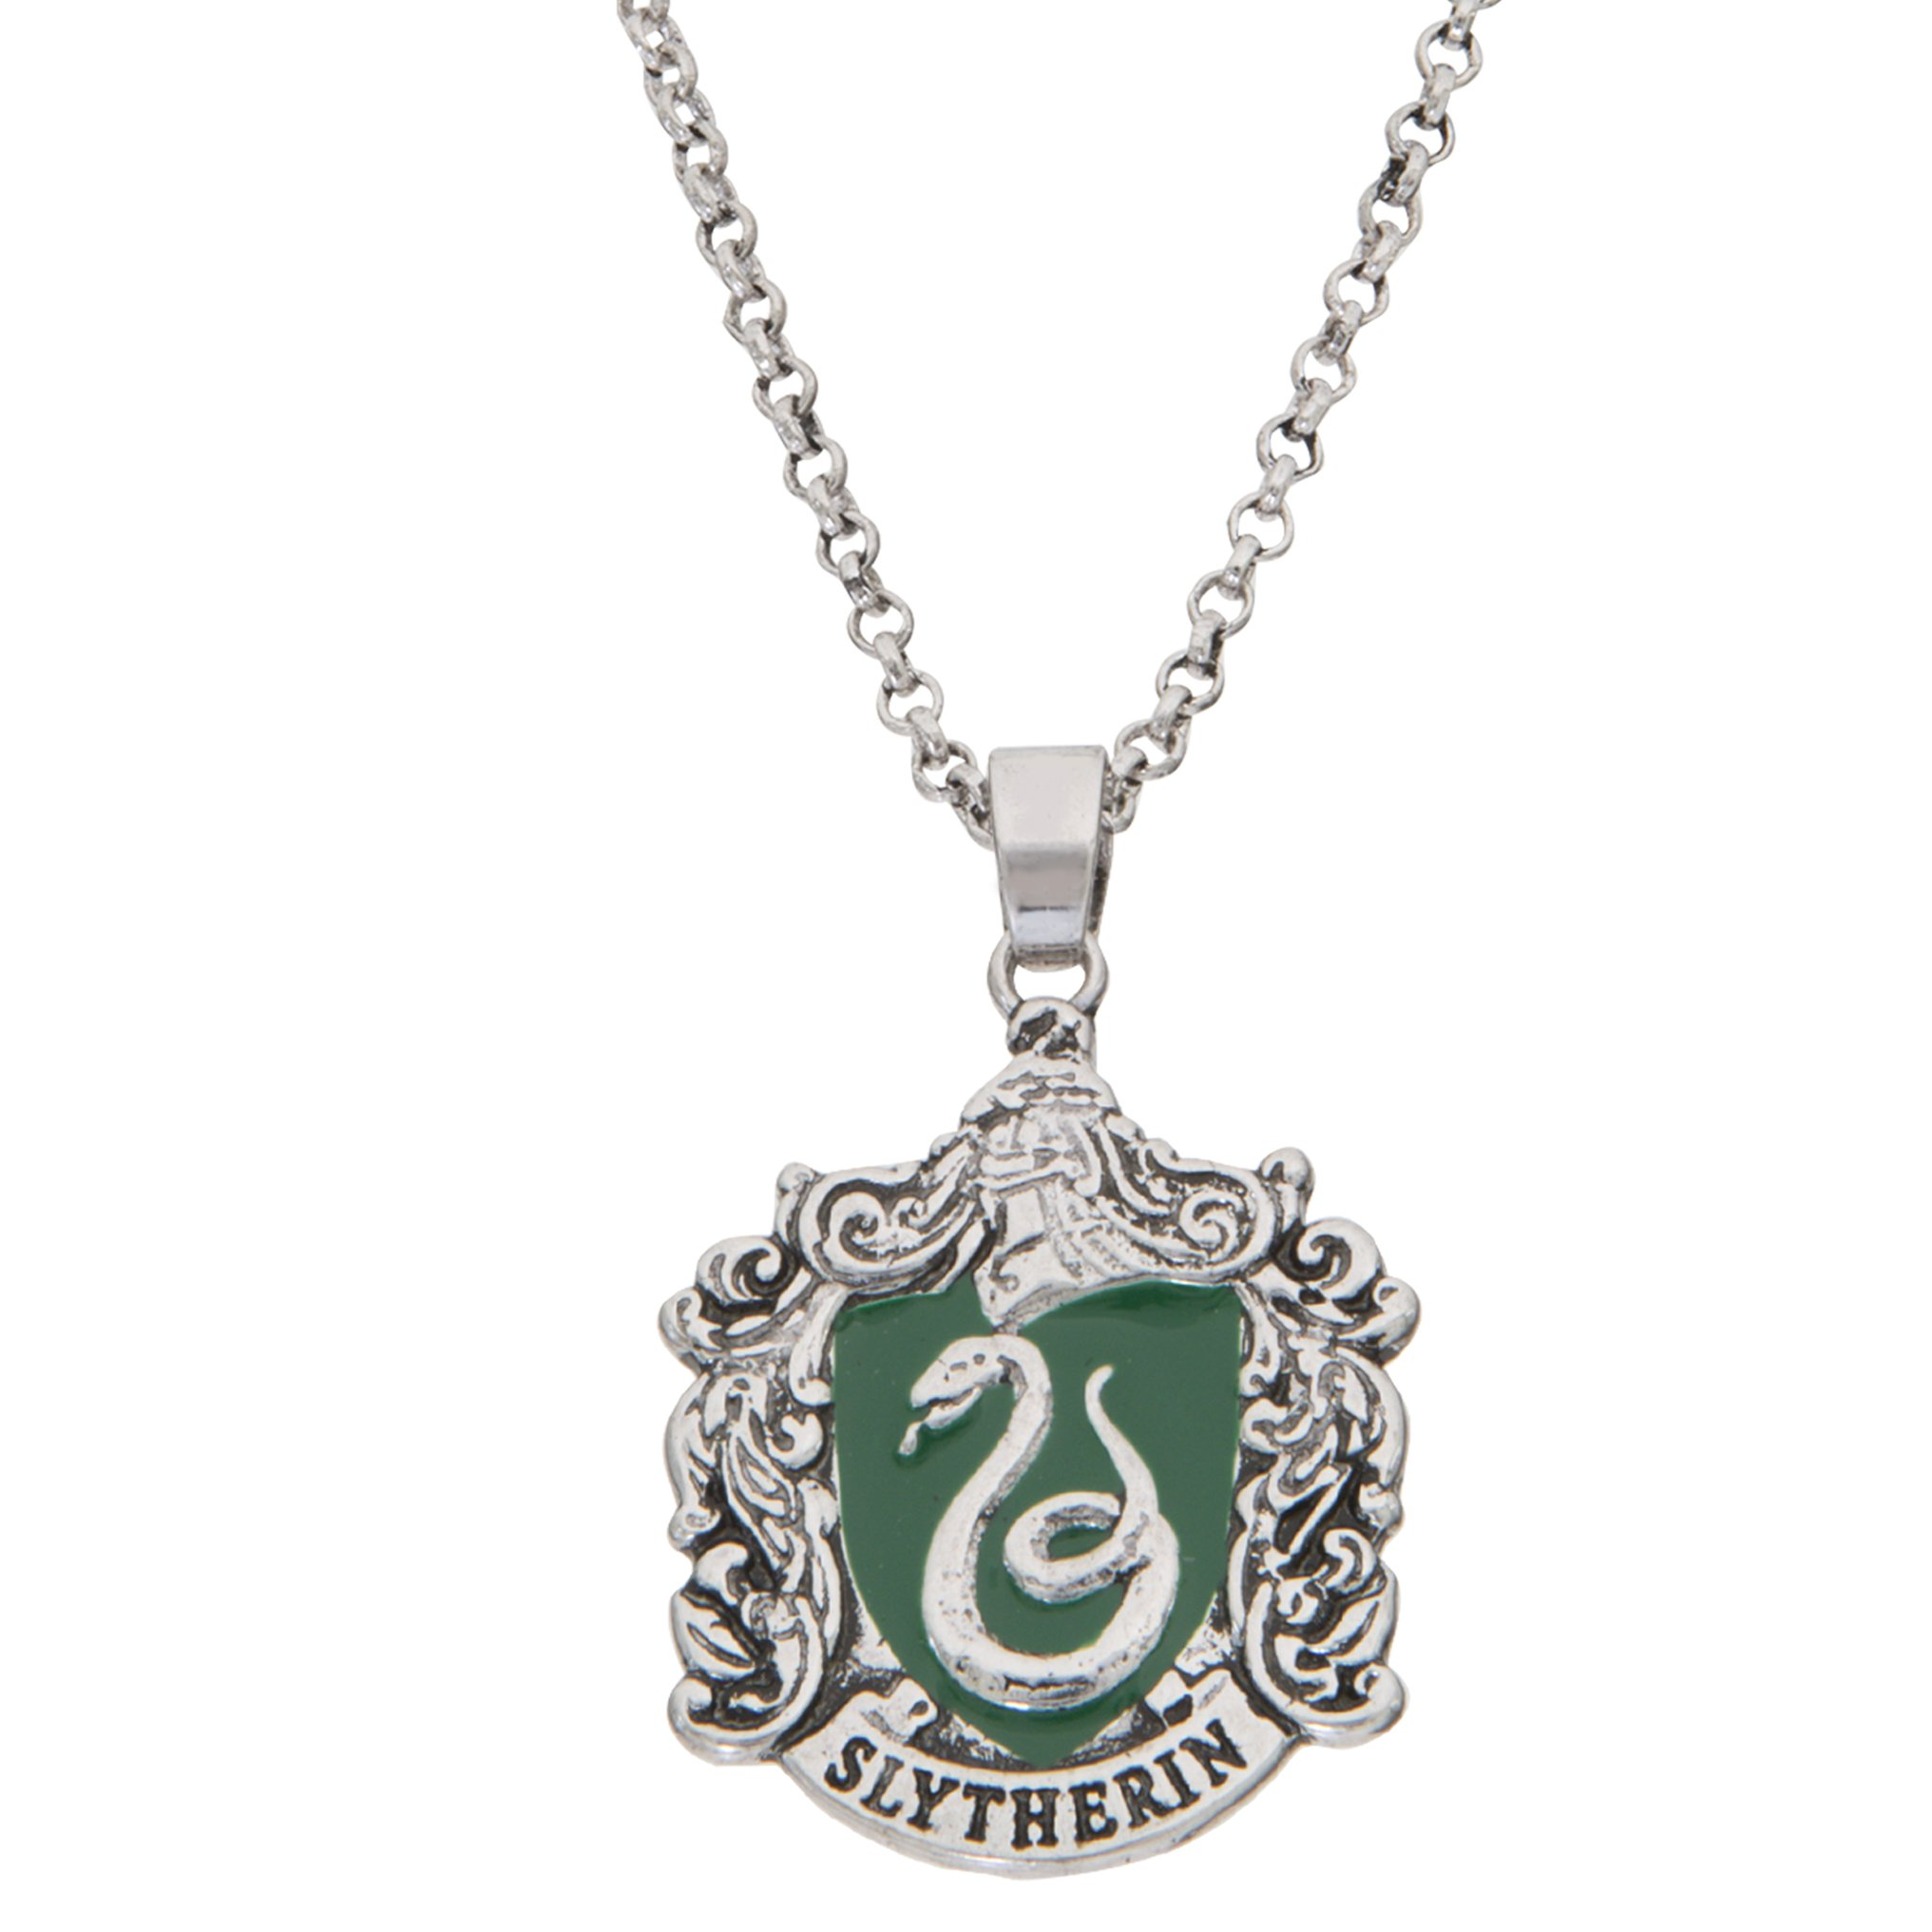 Harry Potter Jewelry for Women and Girls, Silver Plated Slytherin House Pendant, 16'' Chain with 2'' Extender